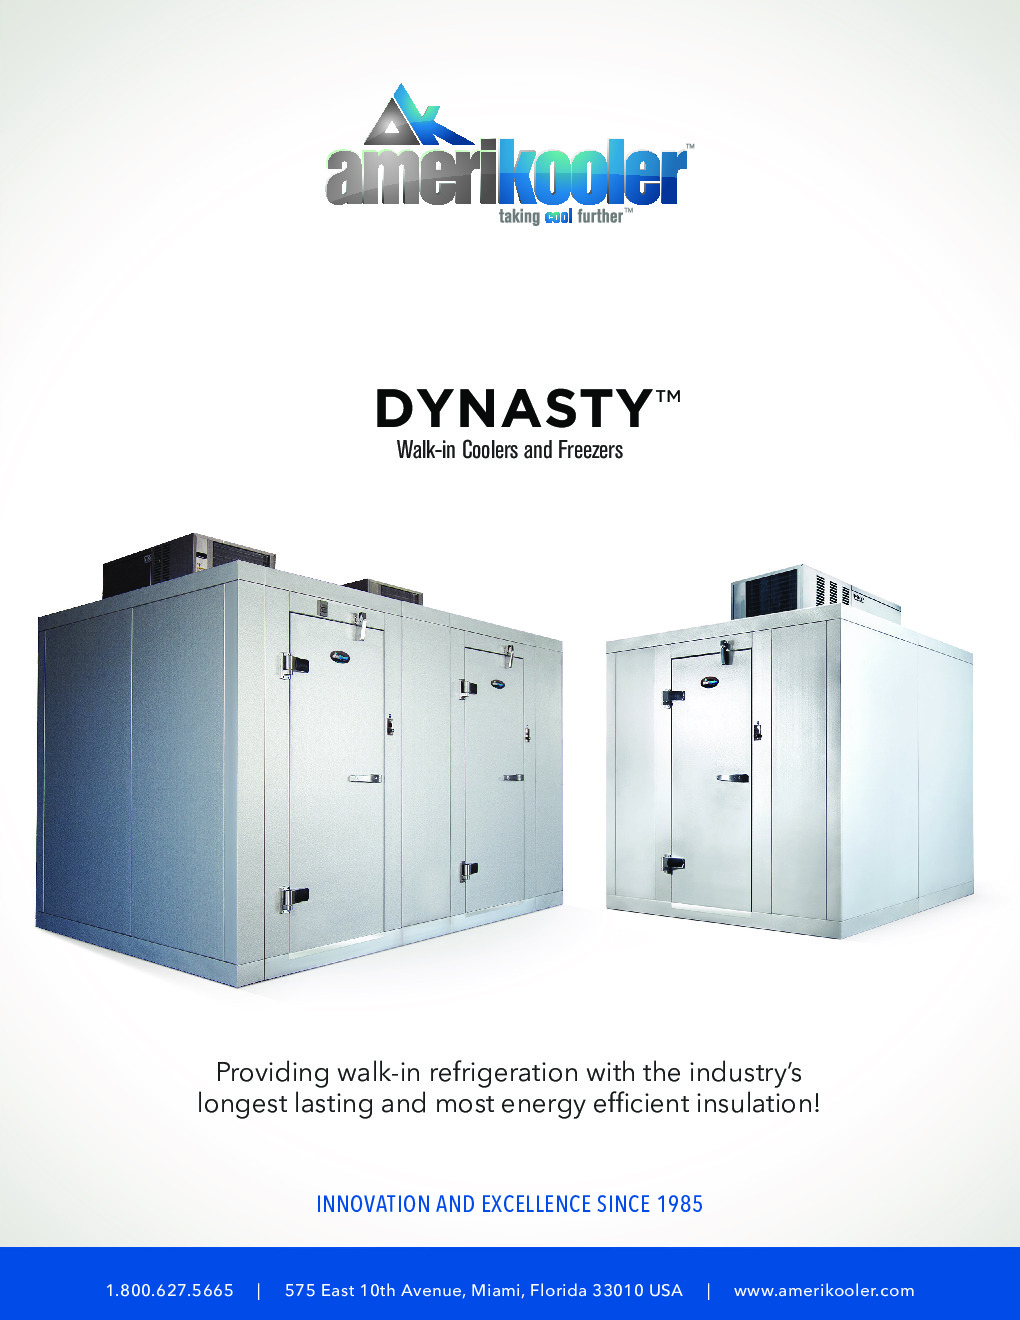 AmeriKooler DW061477F-7/7-SC 6' X 14' Walk-In Cooler, 7' L Cooler with Floor and 7' L Freezer, Self Contained